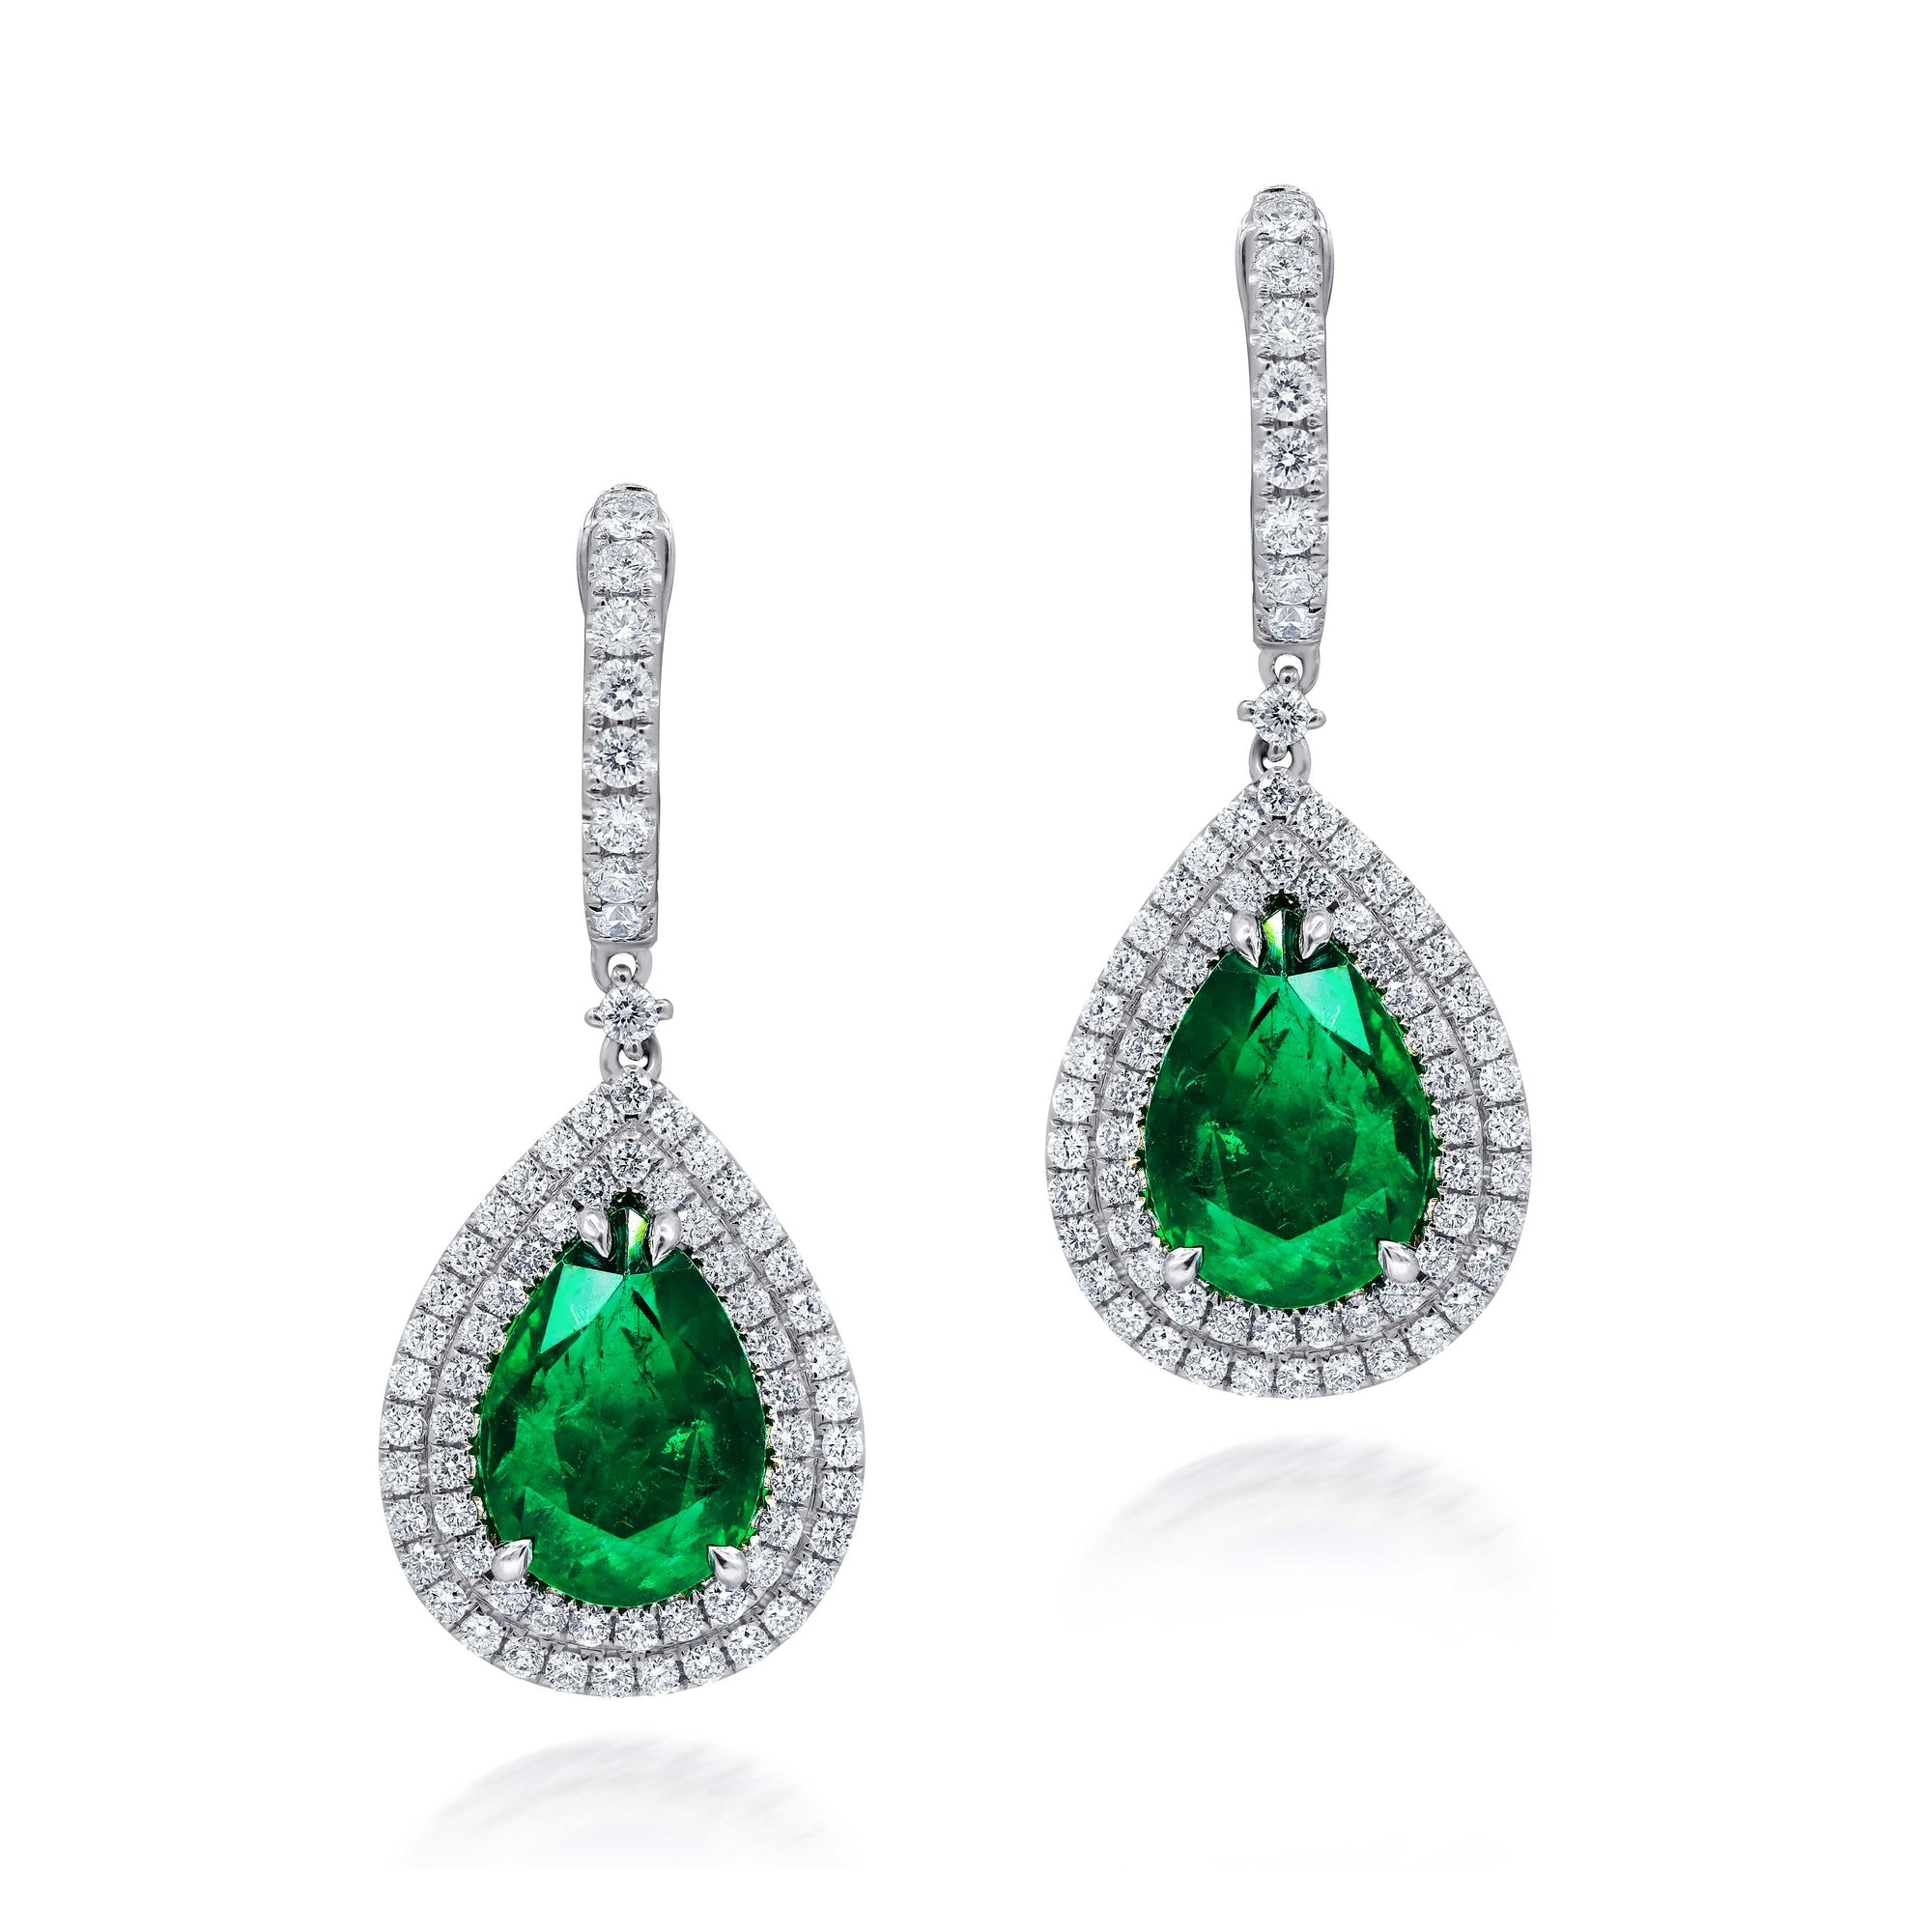 Sell Emerald Earrings in Miami